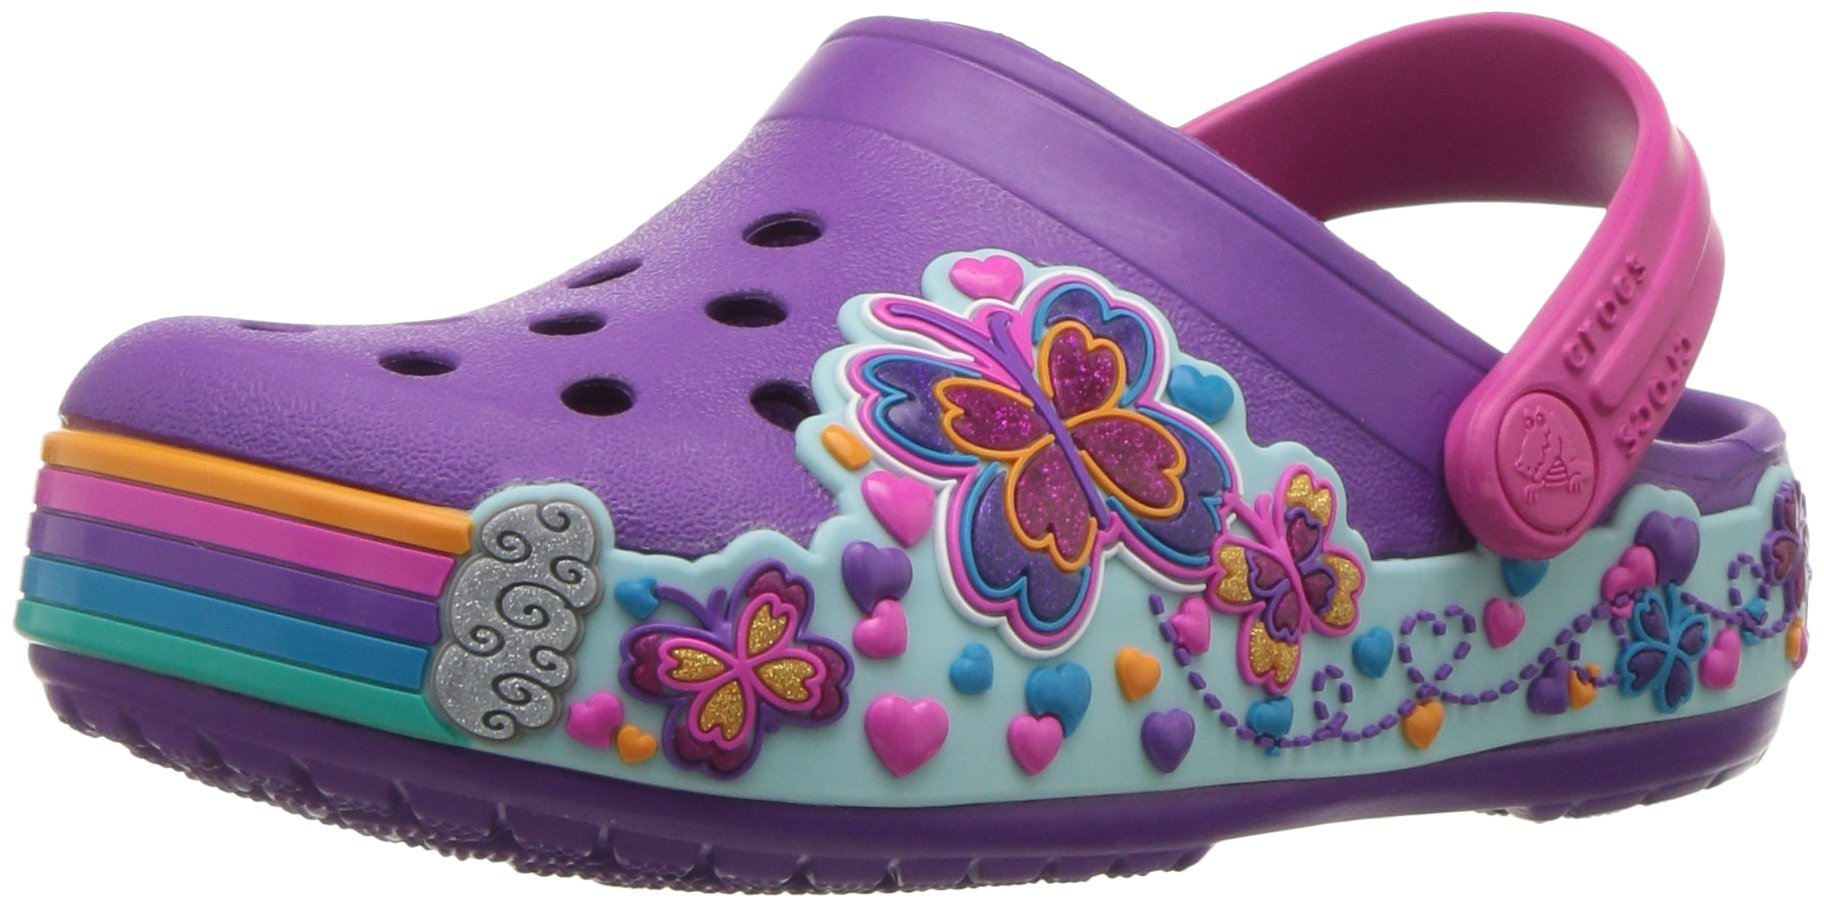 Crocs Unisex-Kids CB Fun Lab Graphic Clg K-Butterfly Clog, Amethyst, 10 M US Little Kid